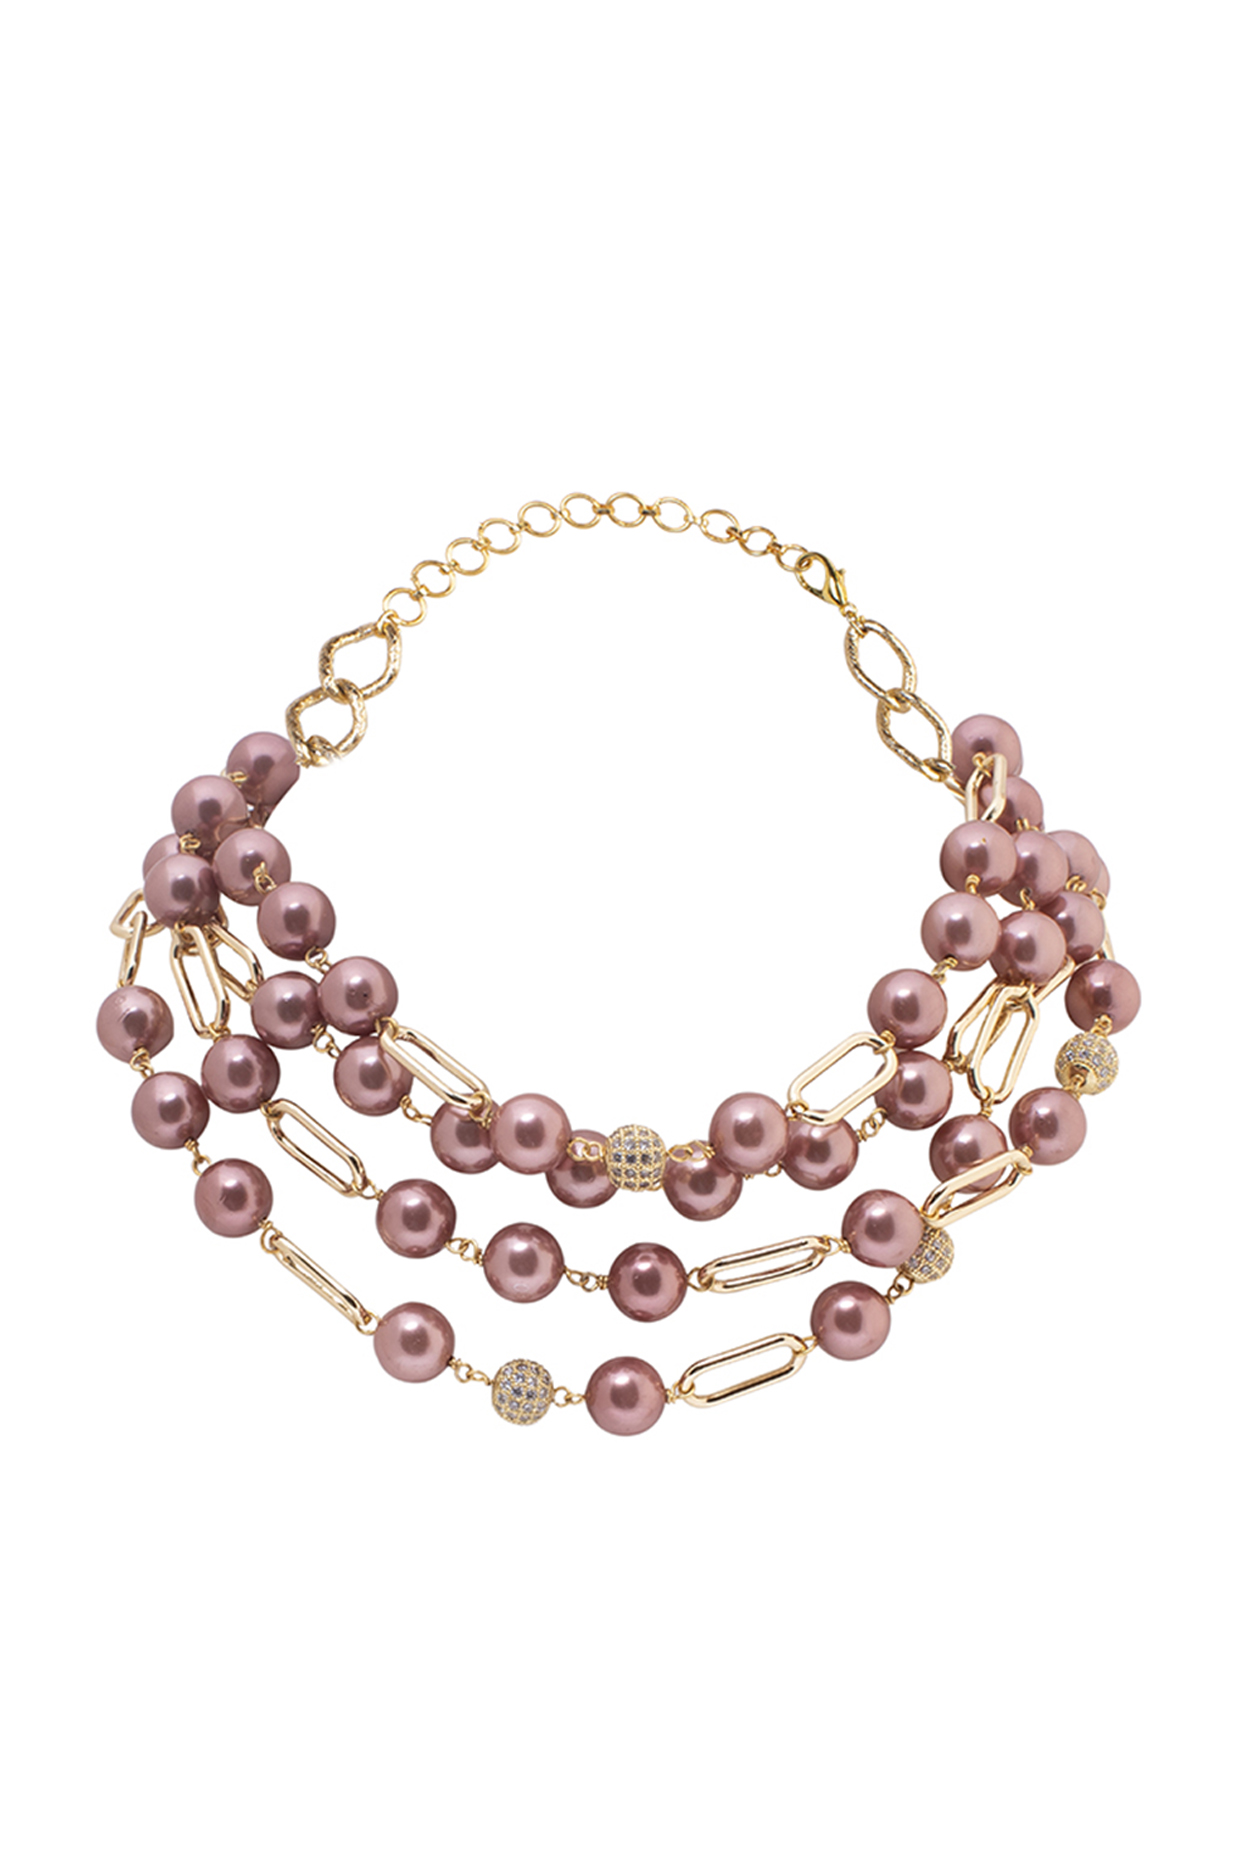 Gold Finish Cubic Zirconia Beads & Pearl Necklace by Joules By Radhika